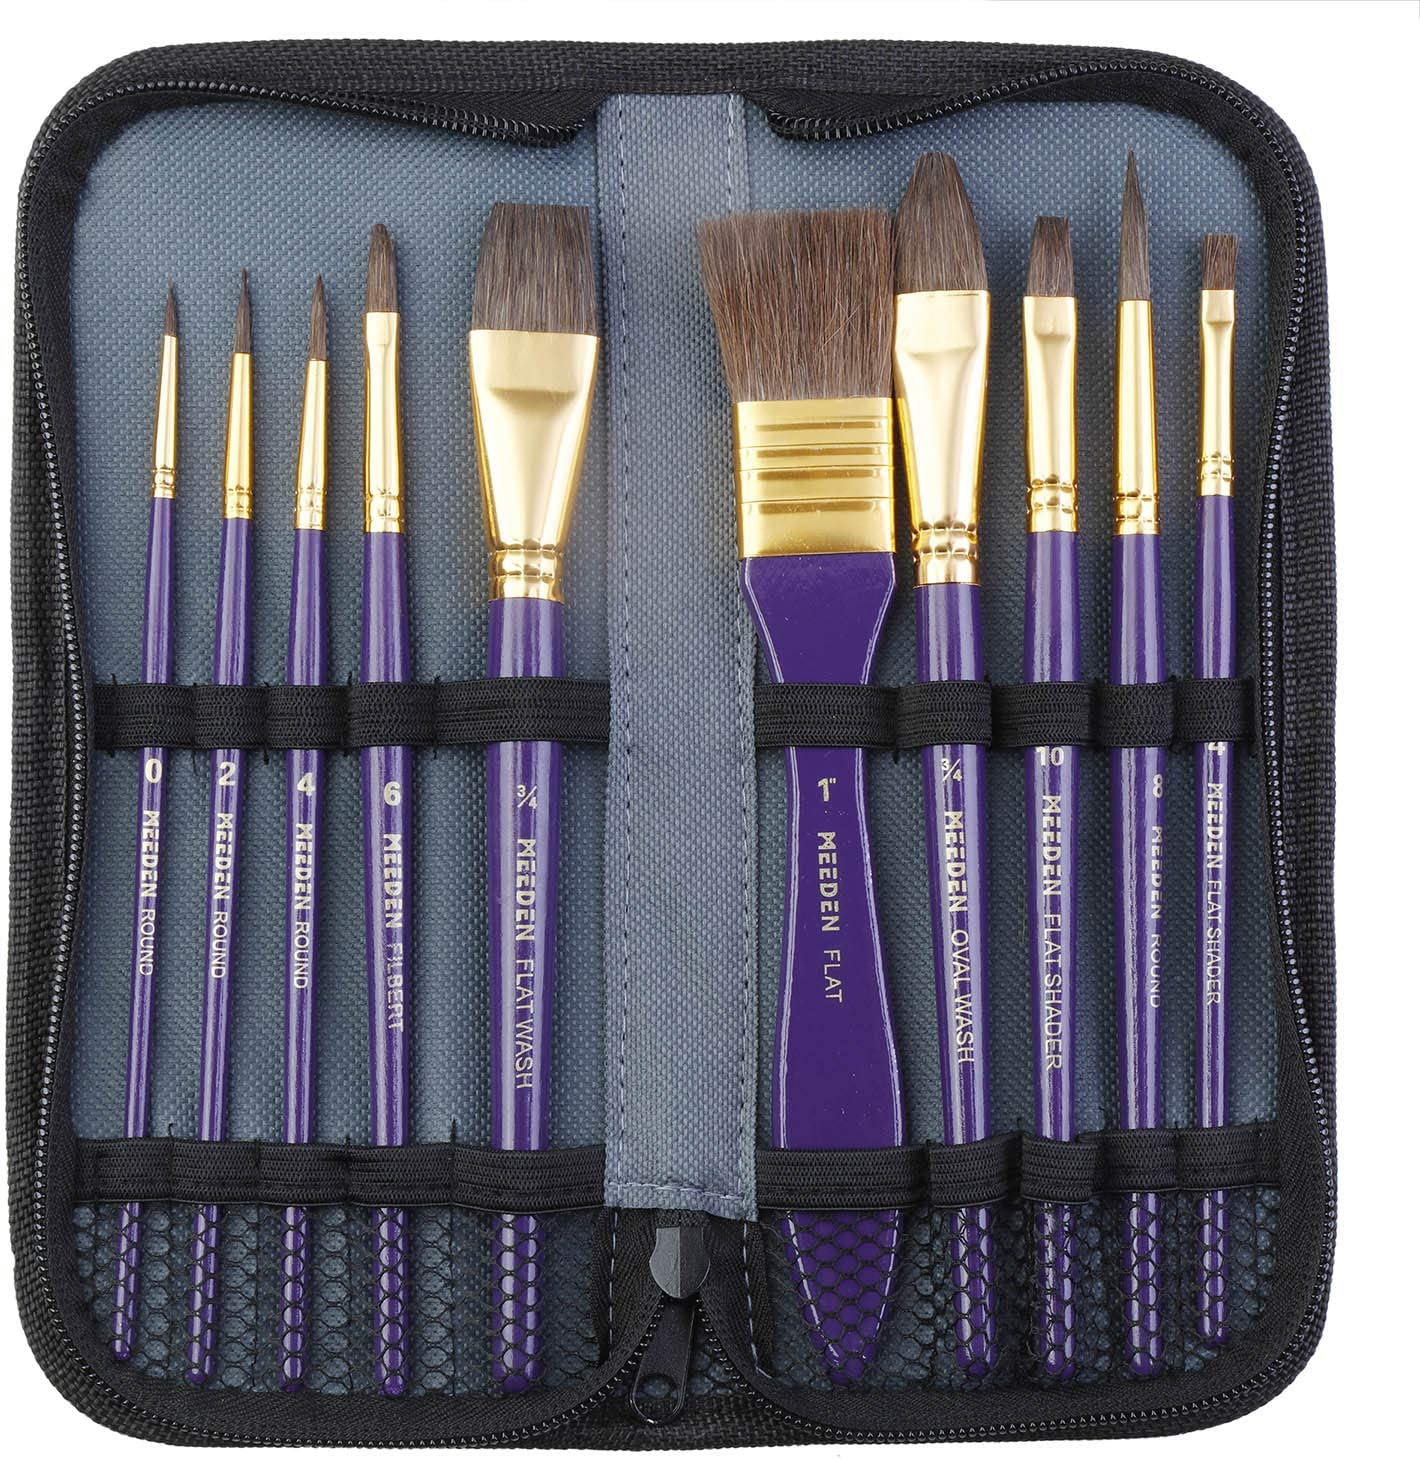 Perfect Gift for Artists MEEDEN 10 Pcs Paint Brush Set Pony and Nylon Hair Includes a Carrying Case for Watercolor Acrylic Painting Adults /& Kids